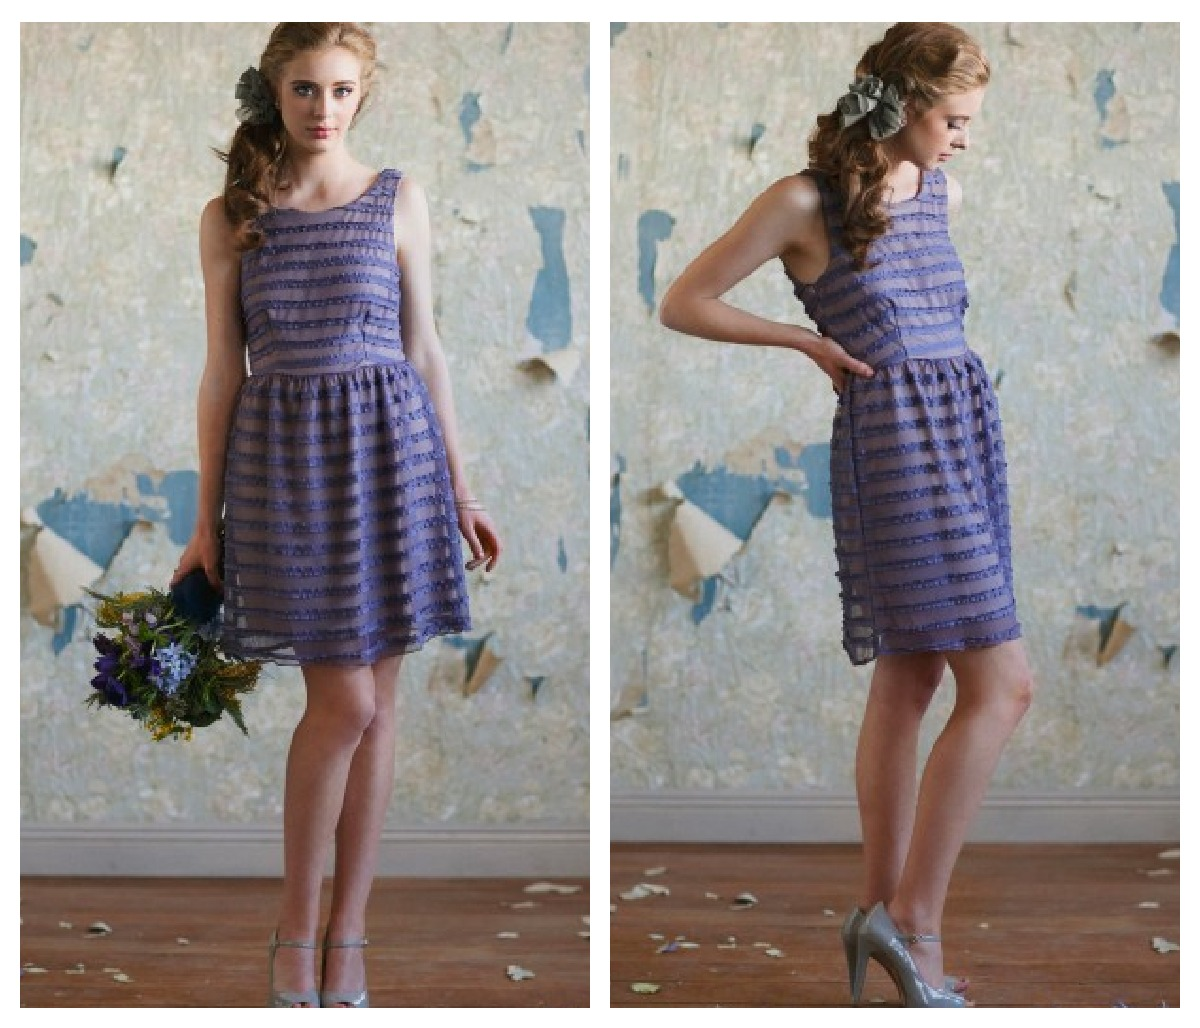 A purple ruffle bridesmaid dress for a rustic or vintage style wedding